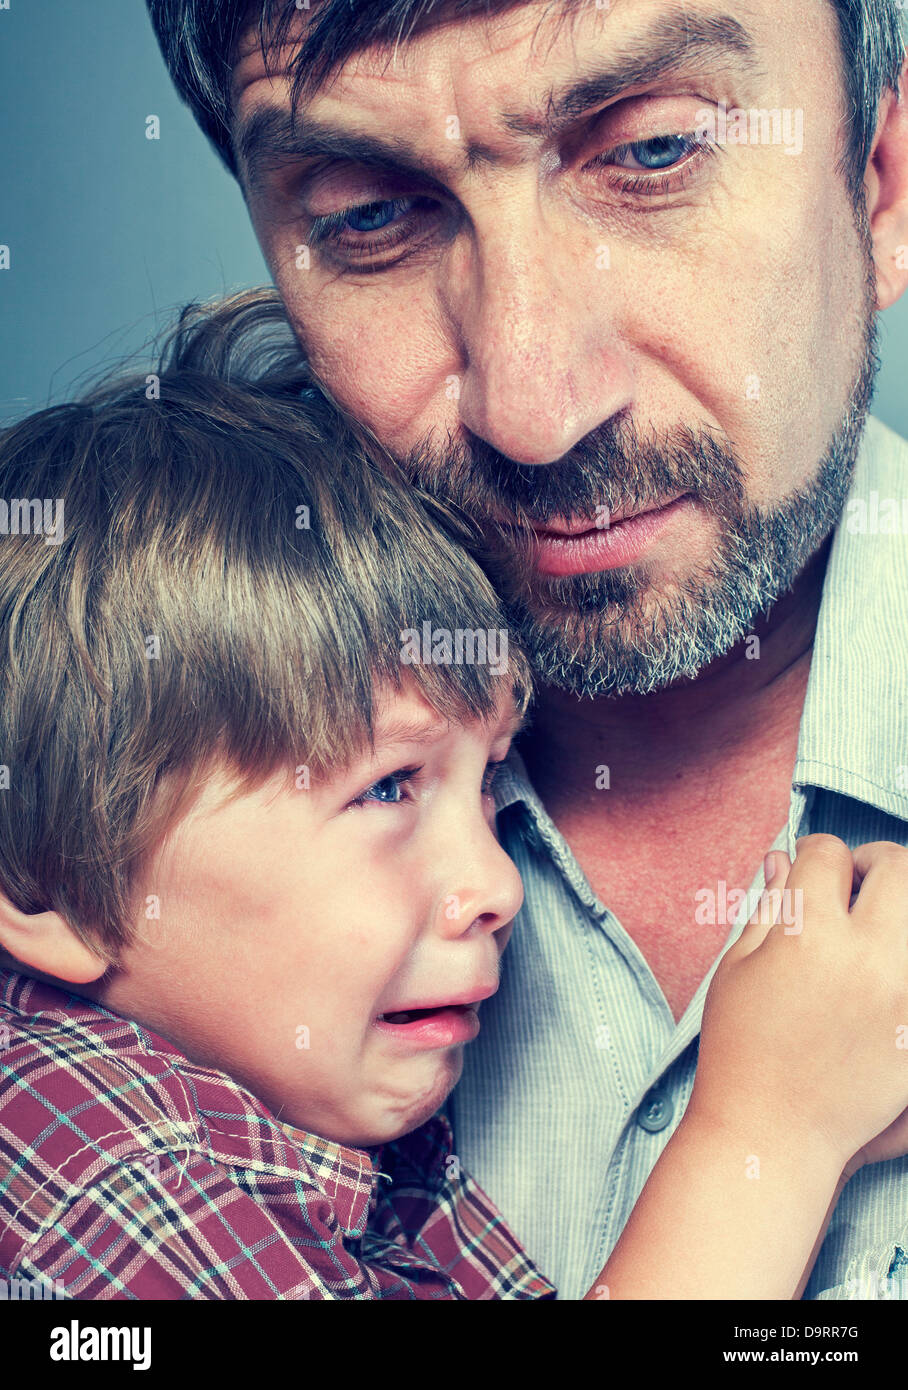 father pities his son - Stock Image